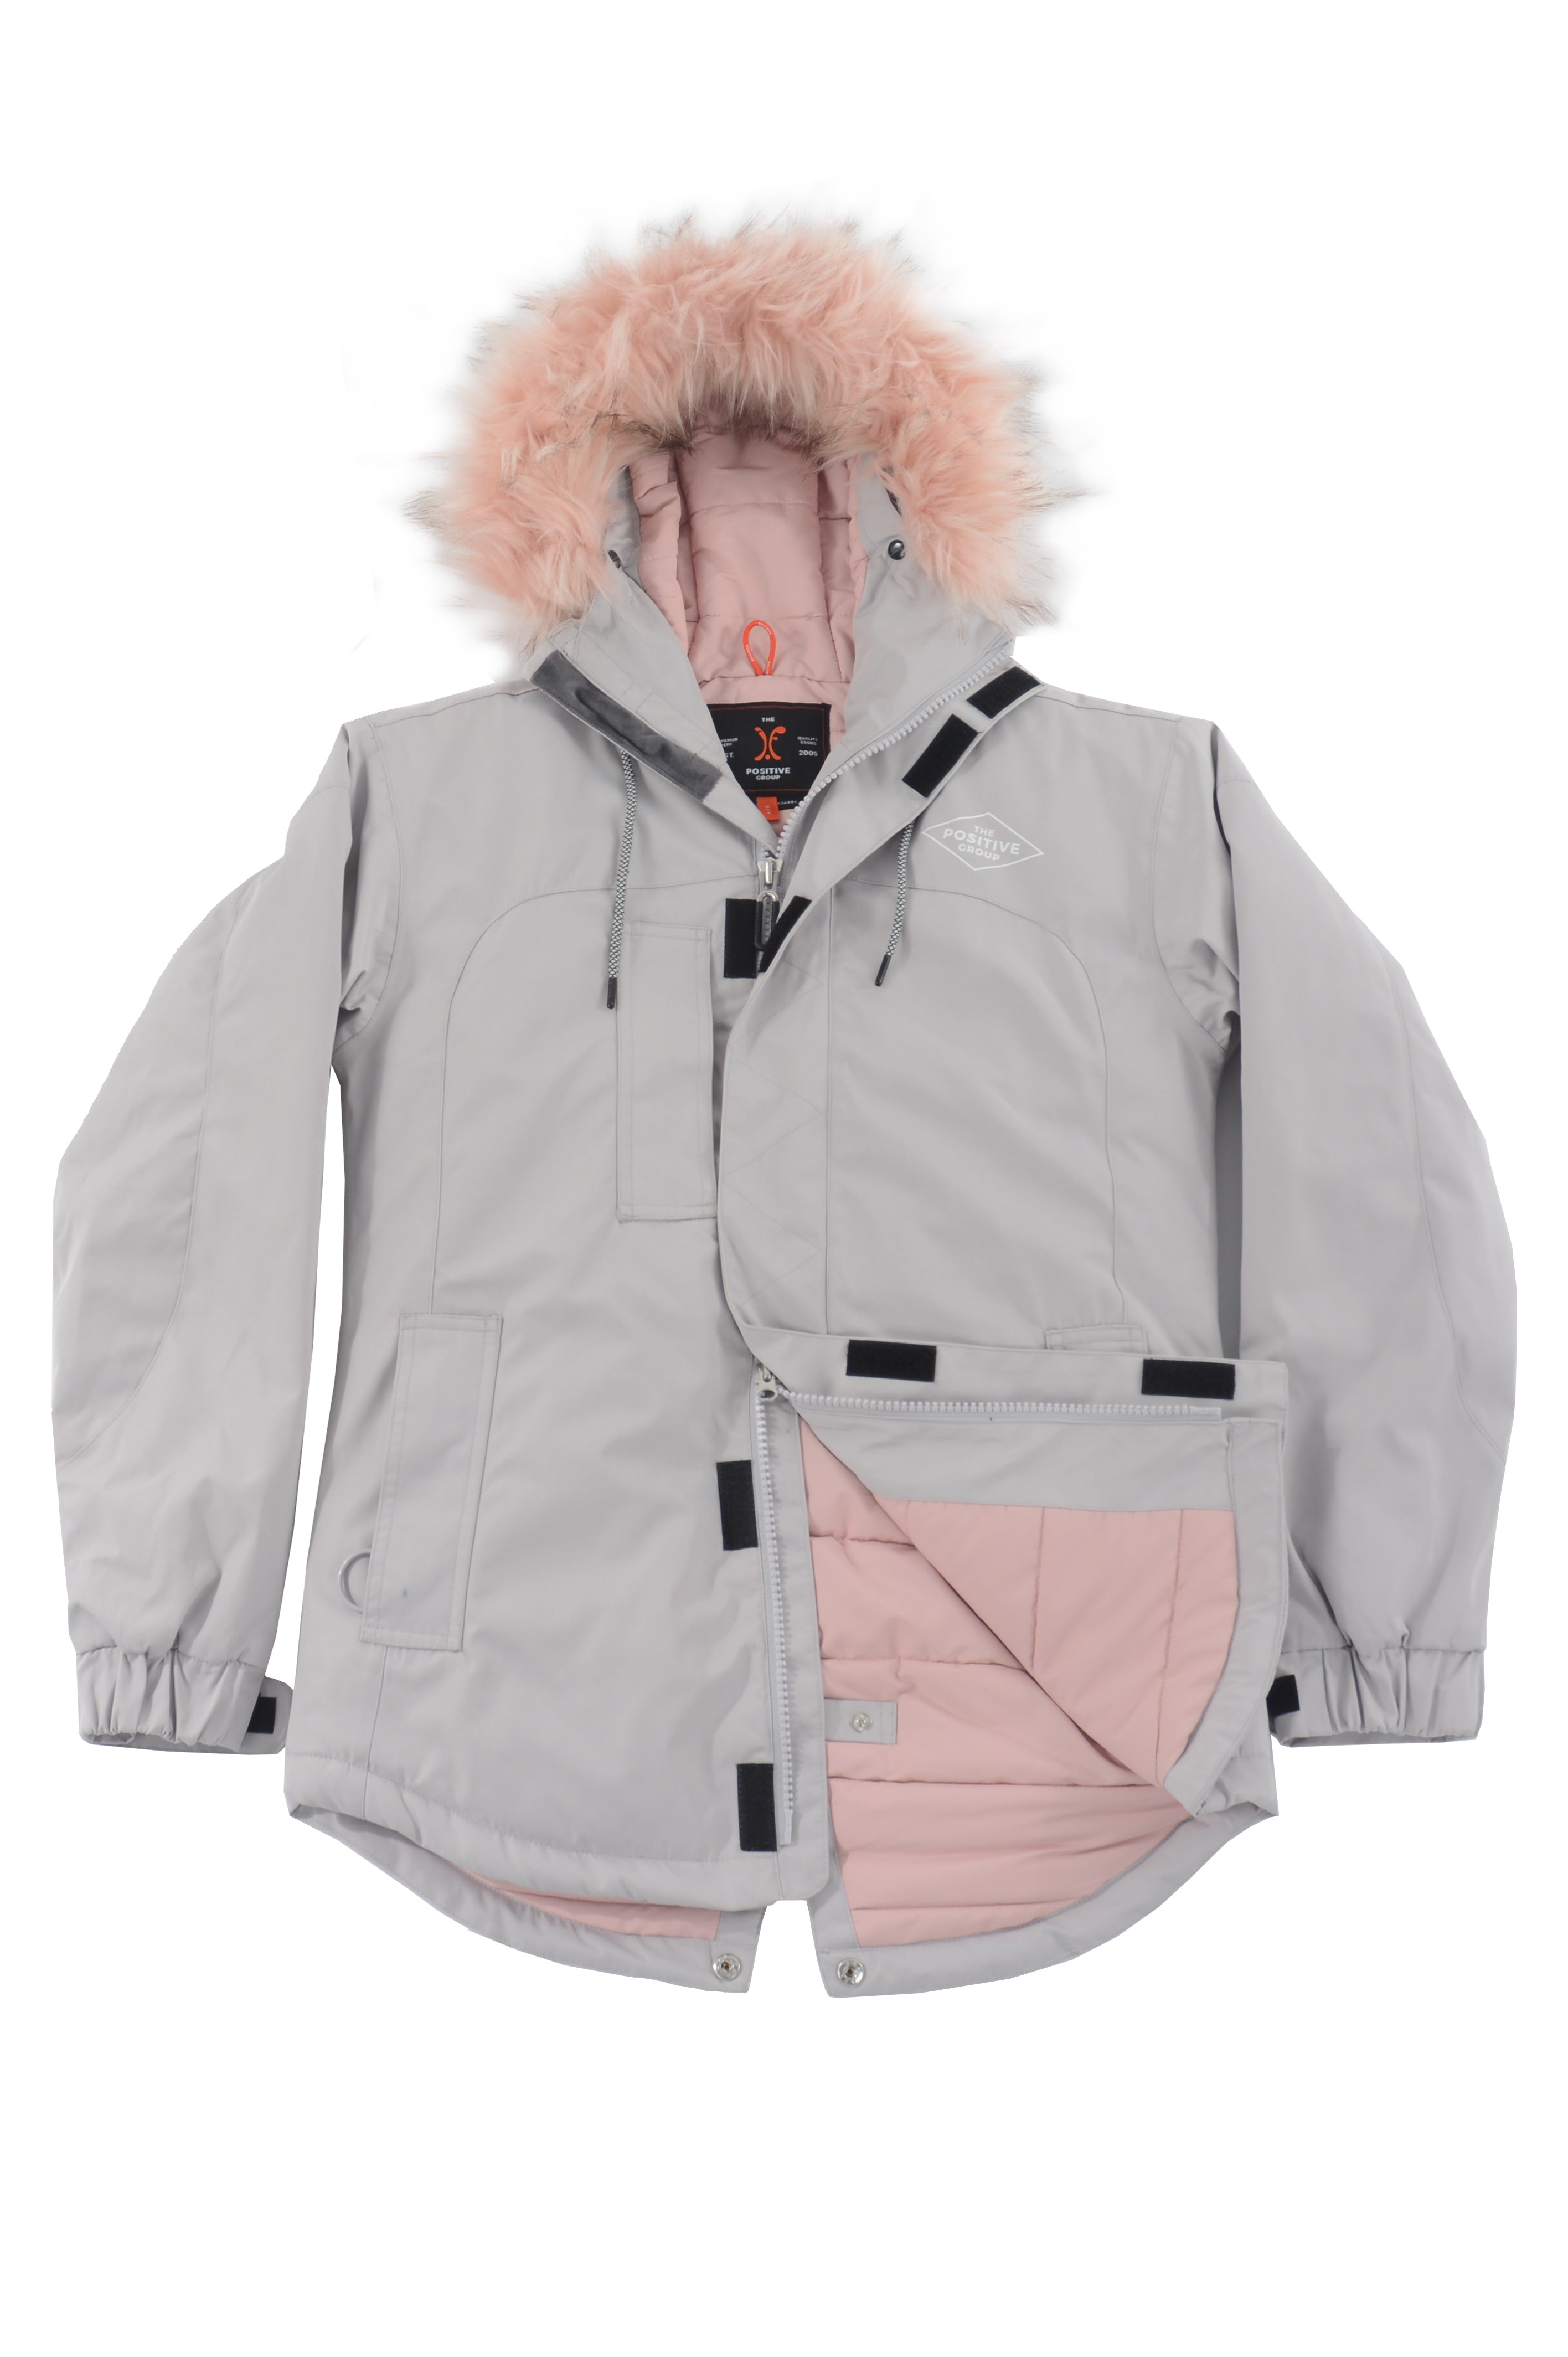 UPNORTH JACKET SOFT GREY, Positive Group,